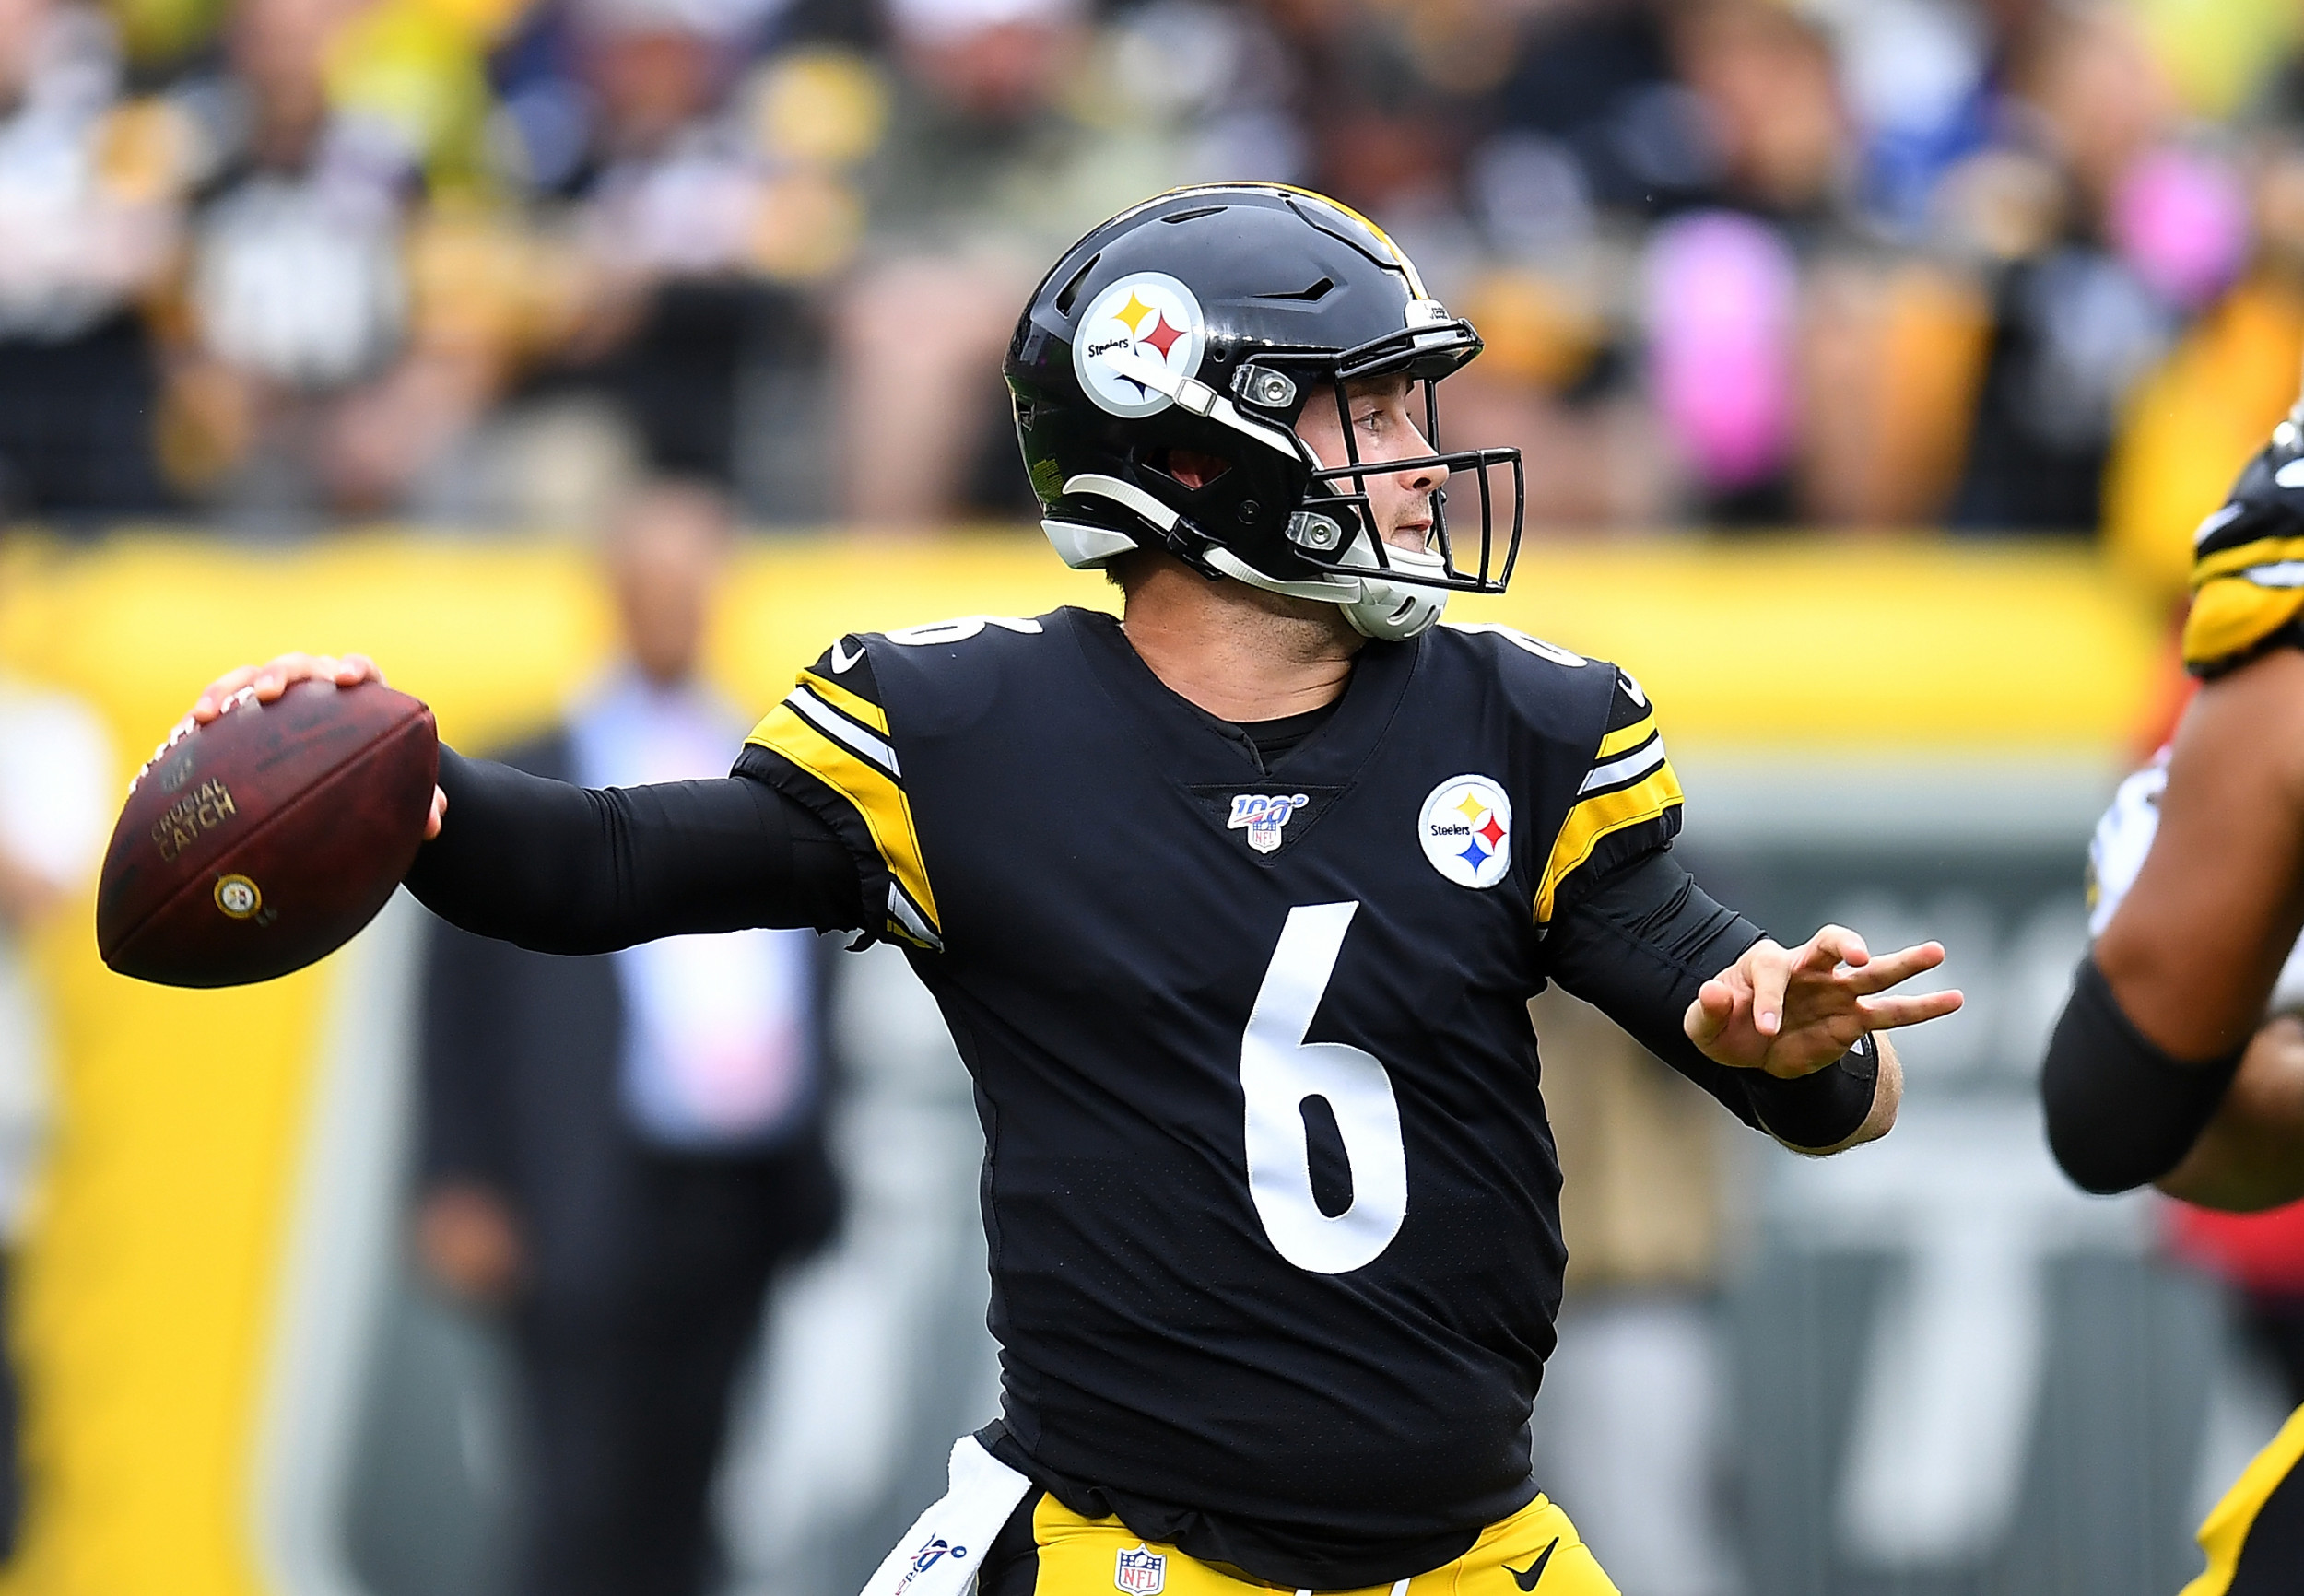 Devlin Hodges Steelers: Who Is Pittsburgh's New QB Who Replaced ...